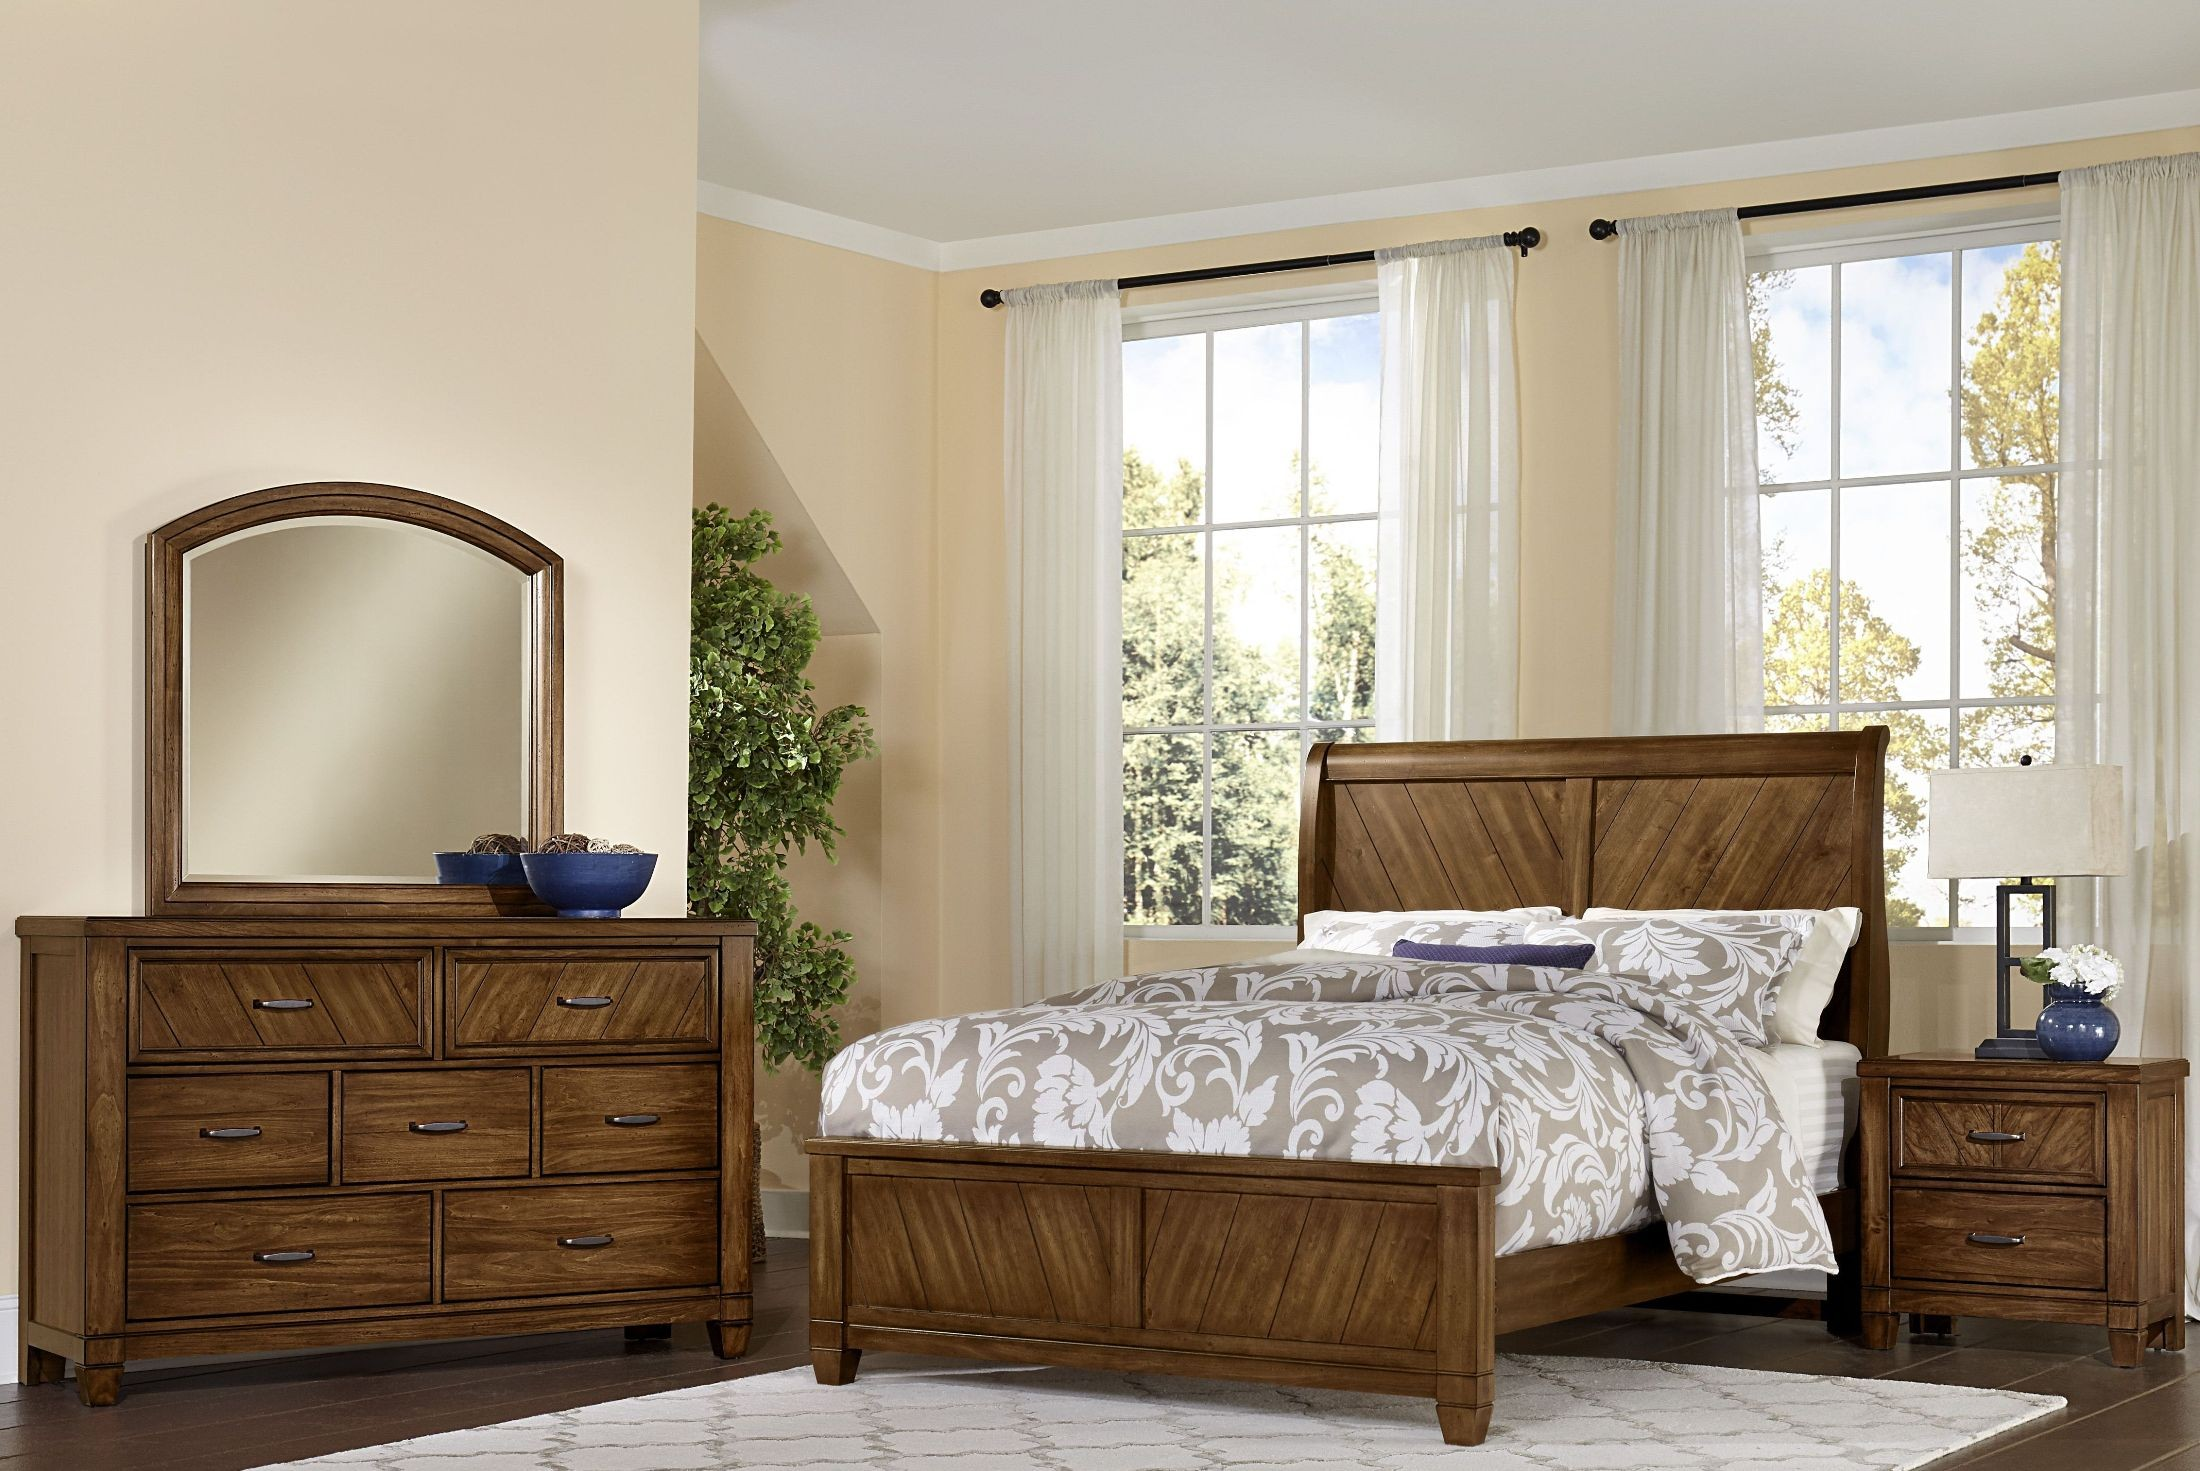 Rustic Cottage Rustic Cherry Sleigh Bedroom Set From Virginia House Coleman Furniture